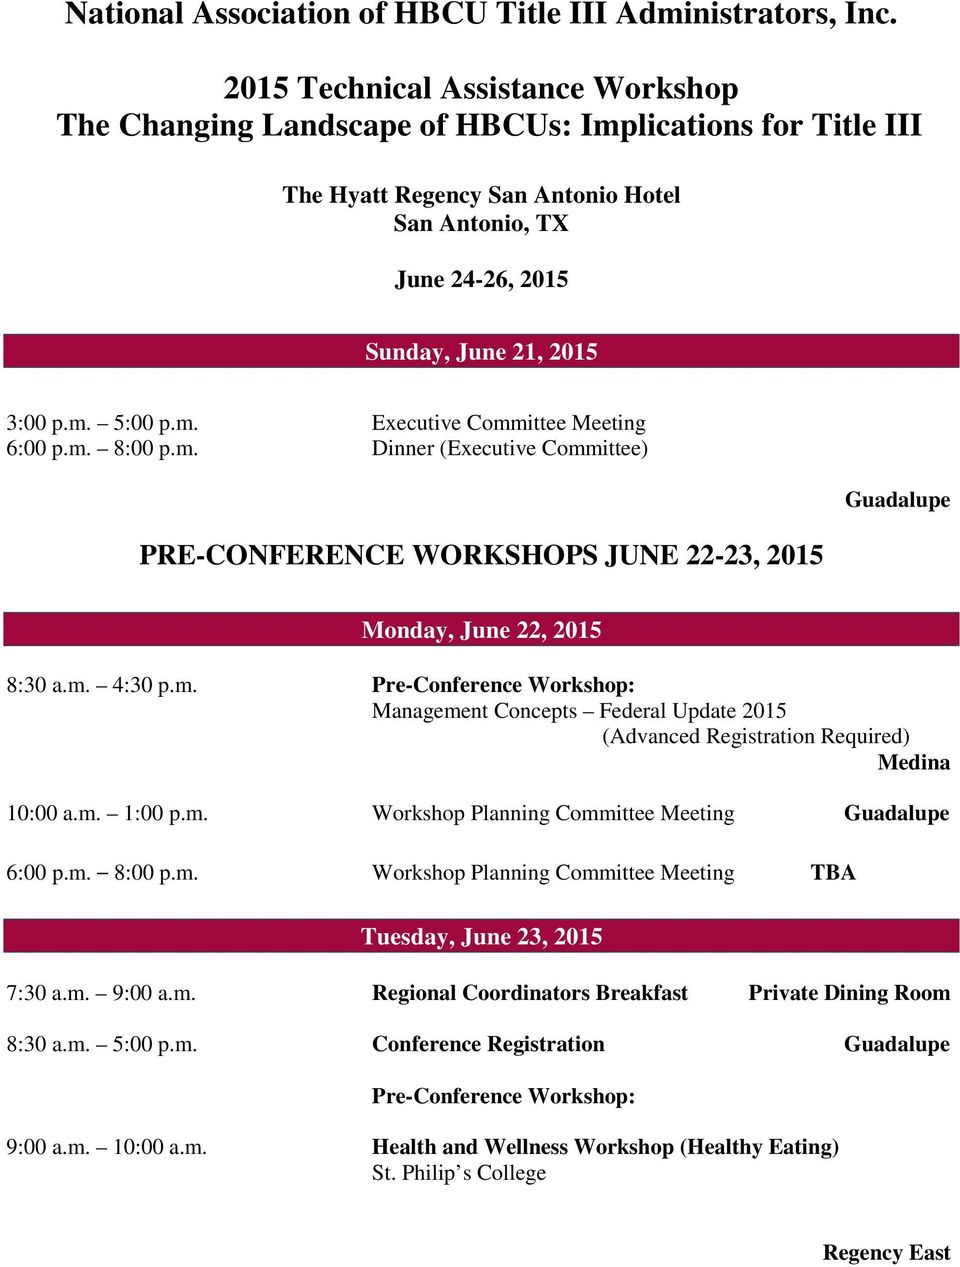 m. Executive Committee Meeting 6:00 p.m. 8:00 p.m. Dinner (Executive Committee) PRE-CONFERENCE WORKSHOPS JUNE 22-23, 2015 Guadalupe Monday, June 22, 2015 8:30 a.m. 4:30 p.m. Pre-Conference Workshop: Management Concepts Federal Update 2015 (Advanced Registration Required) Medina 10:00 a.